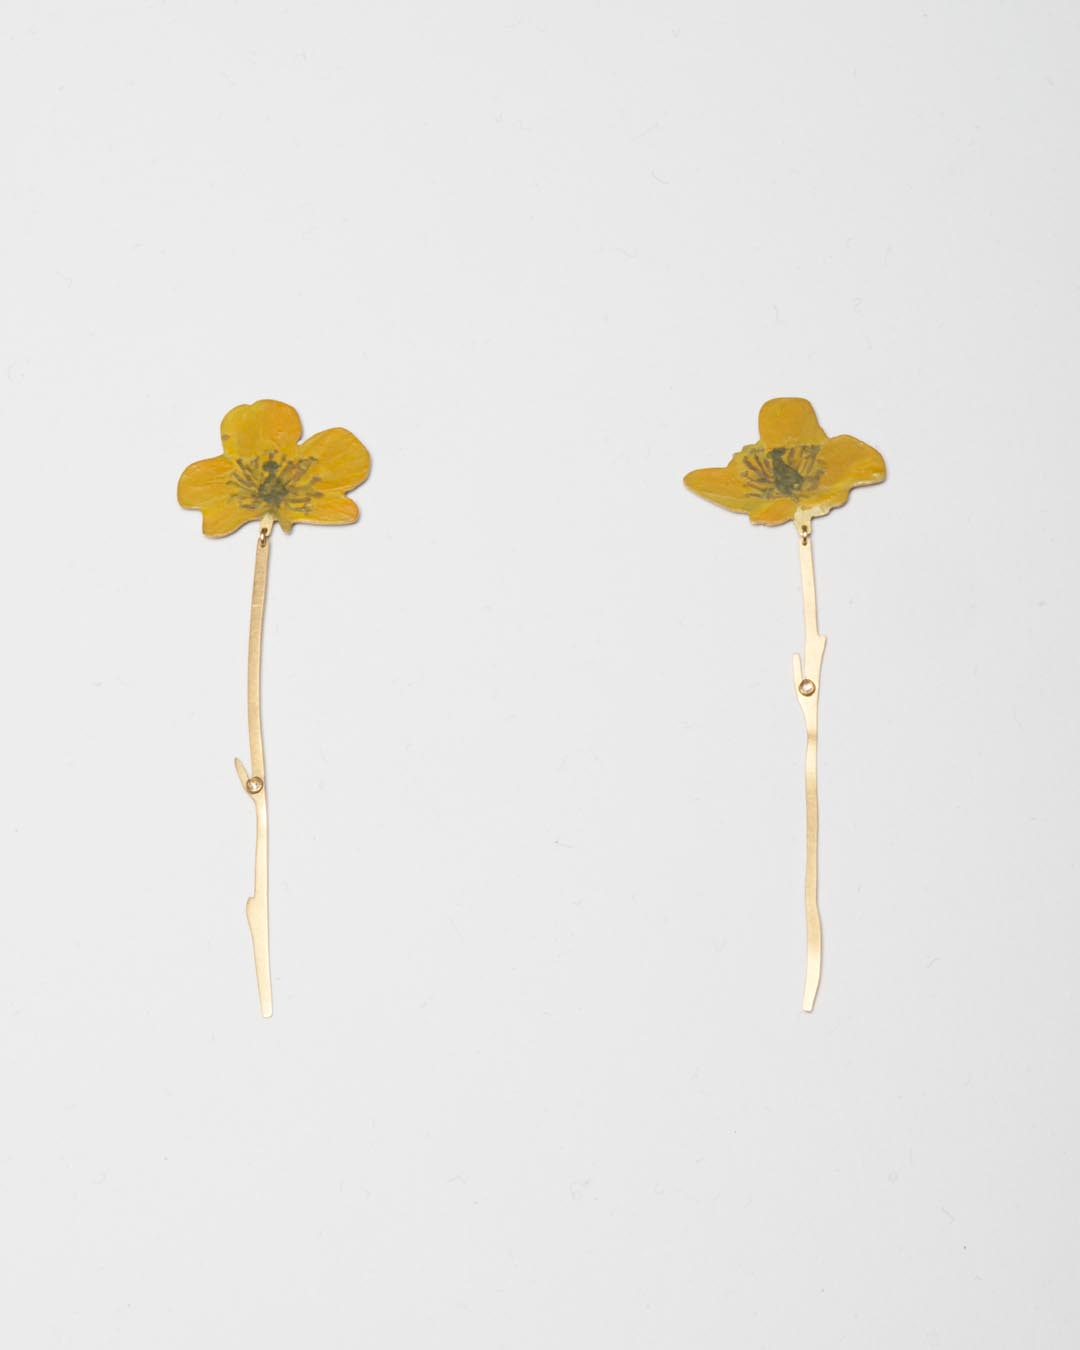 Christopher Thompson Royds, Natura Morta: buttercup, 2019, drop earrings; 18ct gold, hand-painted, diamonds, 70 x 20 mm, €1750 (image 2/2)